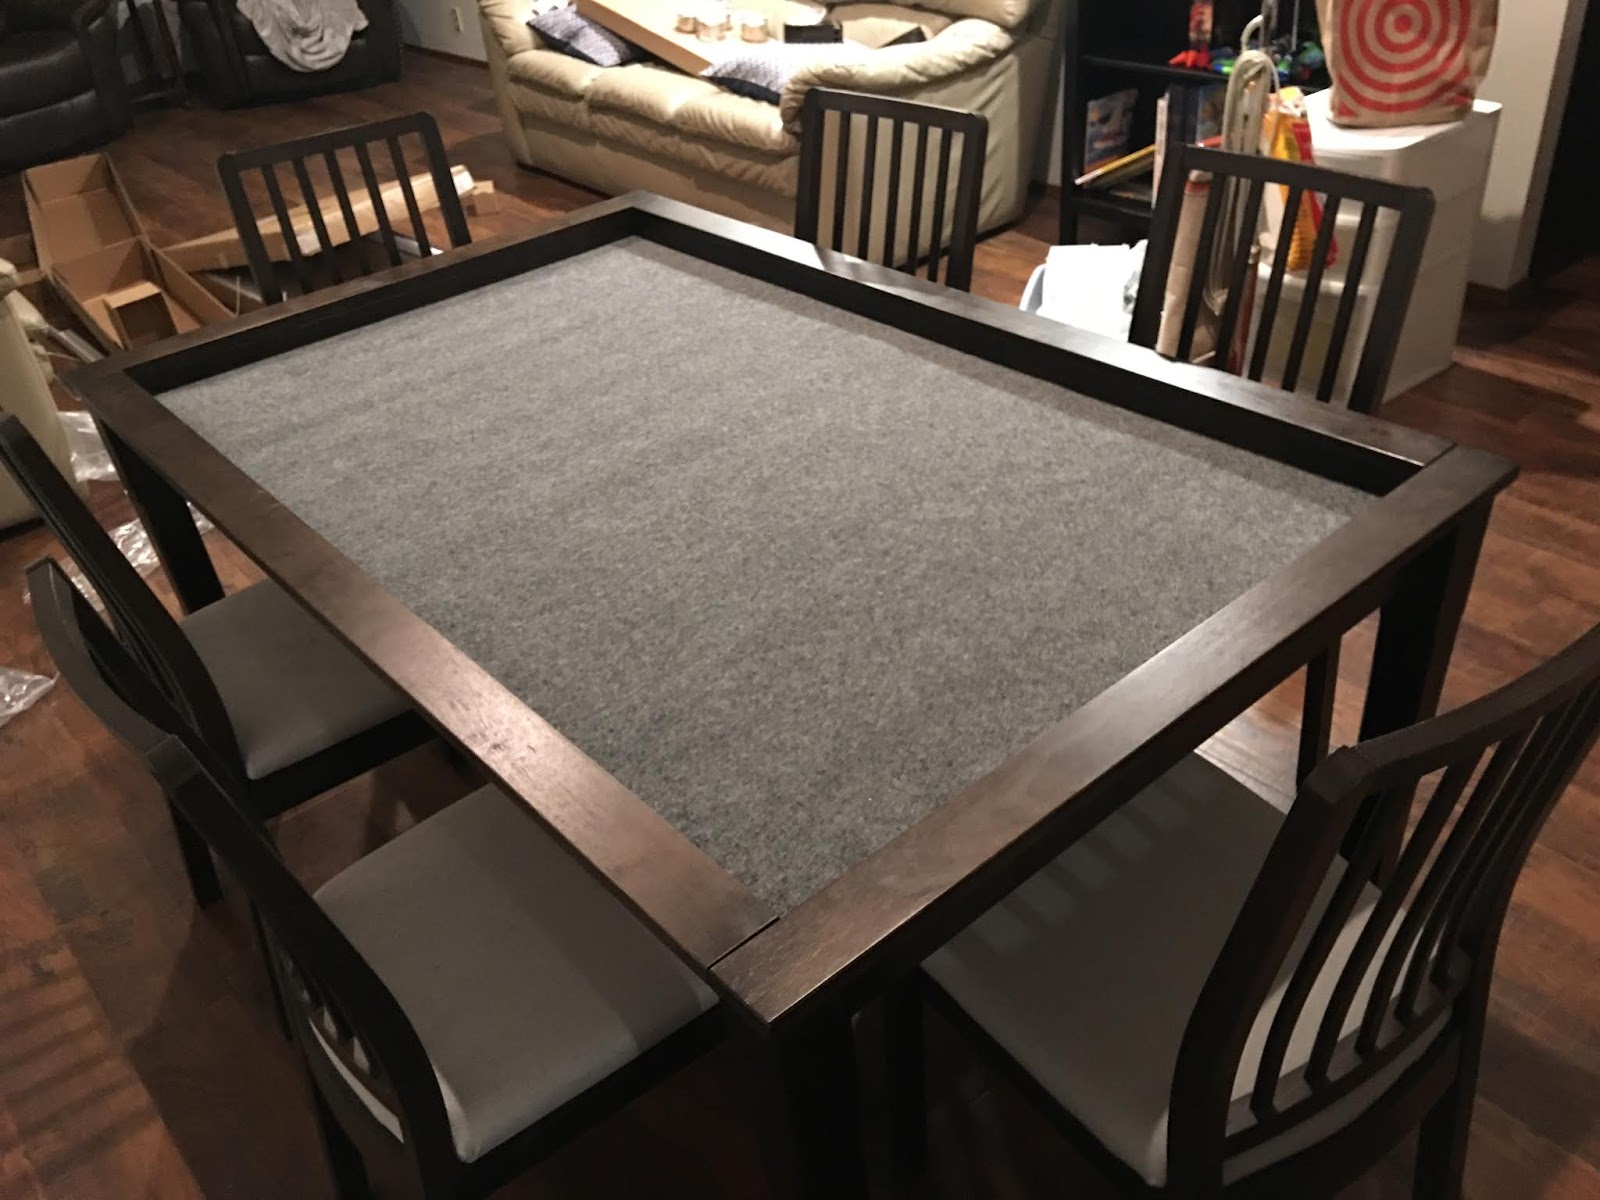 Steel Strategy's Unnamed Blog: My New Gaming Table - A Review of